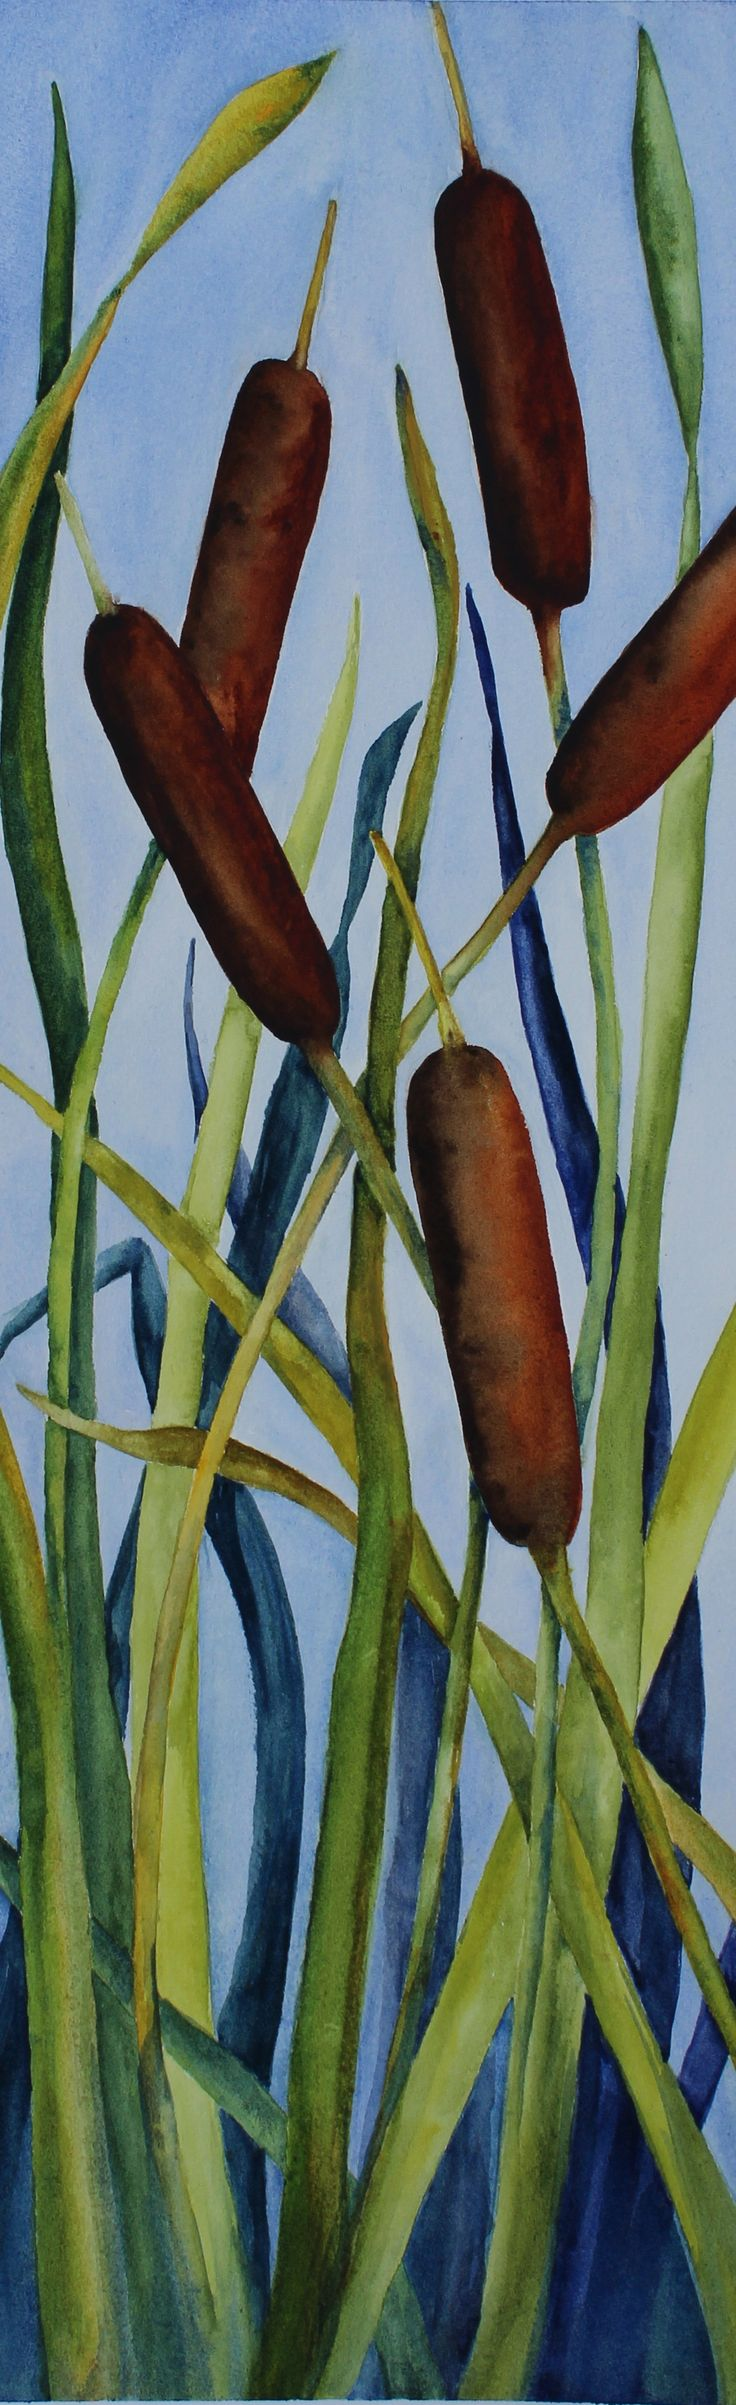 cattails watercolor   Cattails: botanical, contemporary, fine art, measures 27 x 9 inches ...